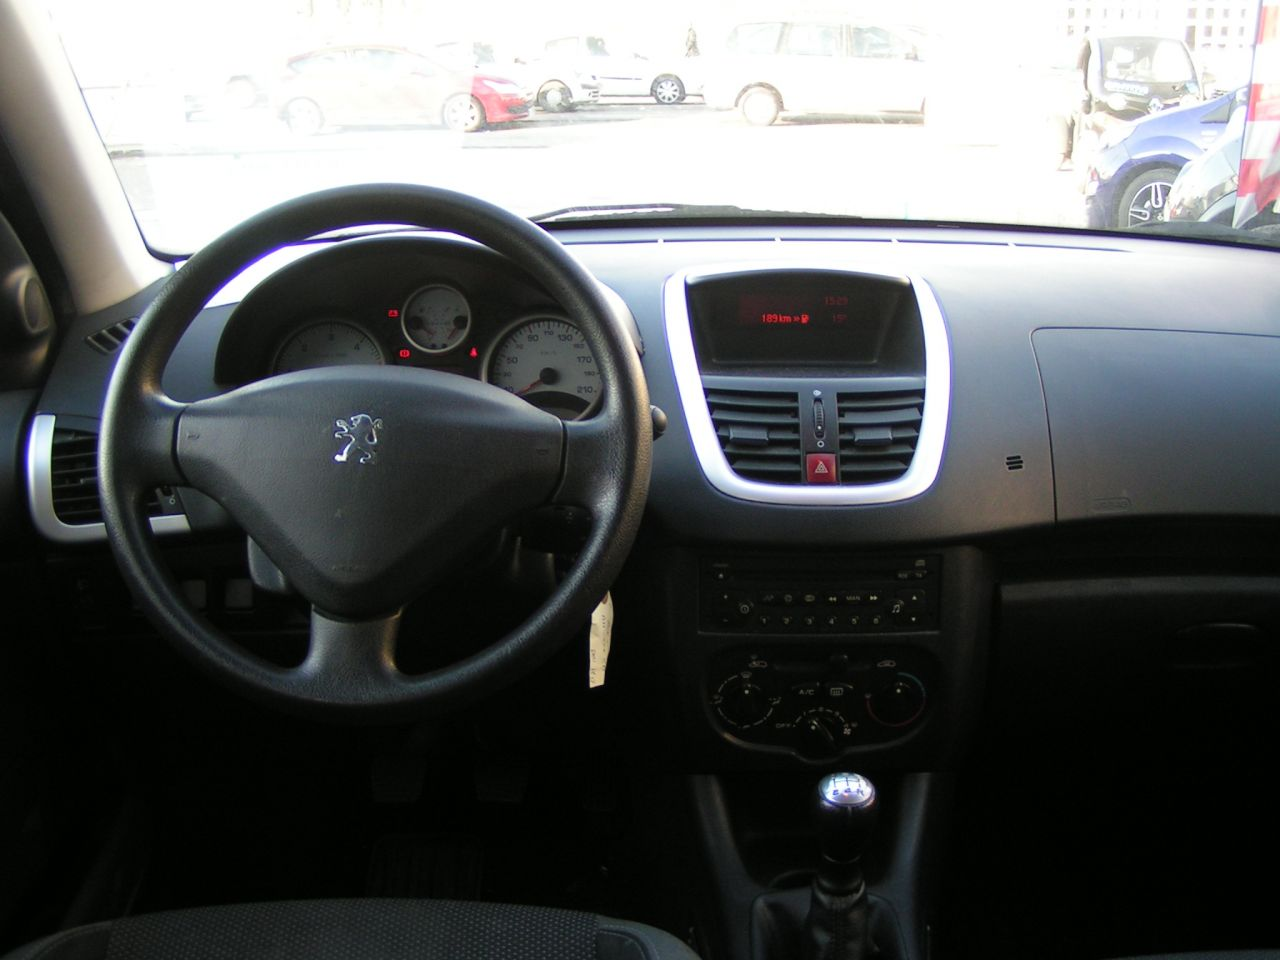 206 trendy clim 5 portes 62 000 kms garantie pro for Clim d interieur